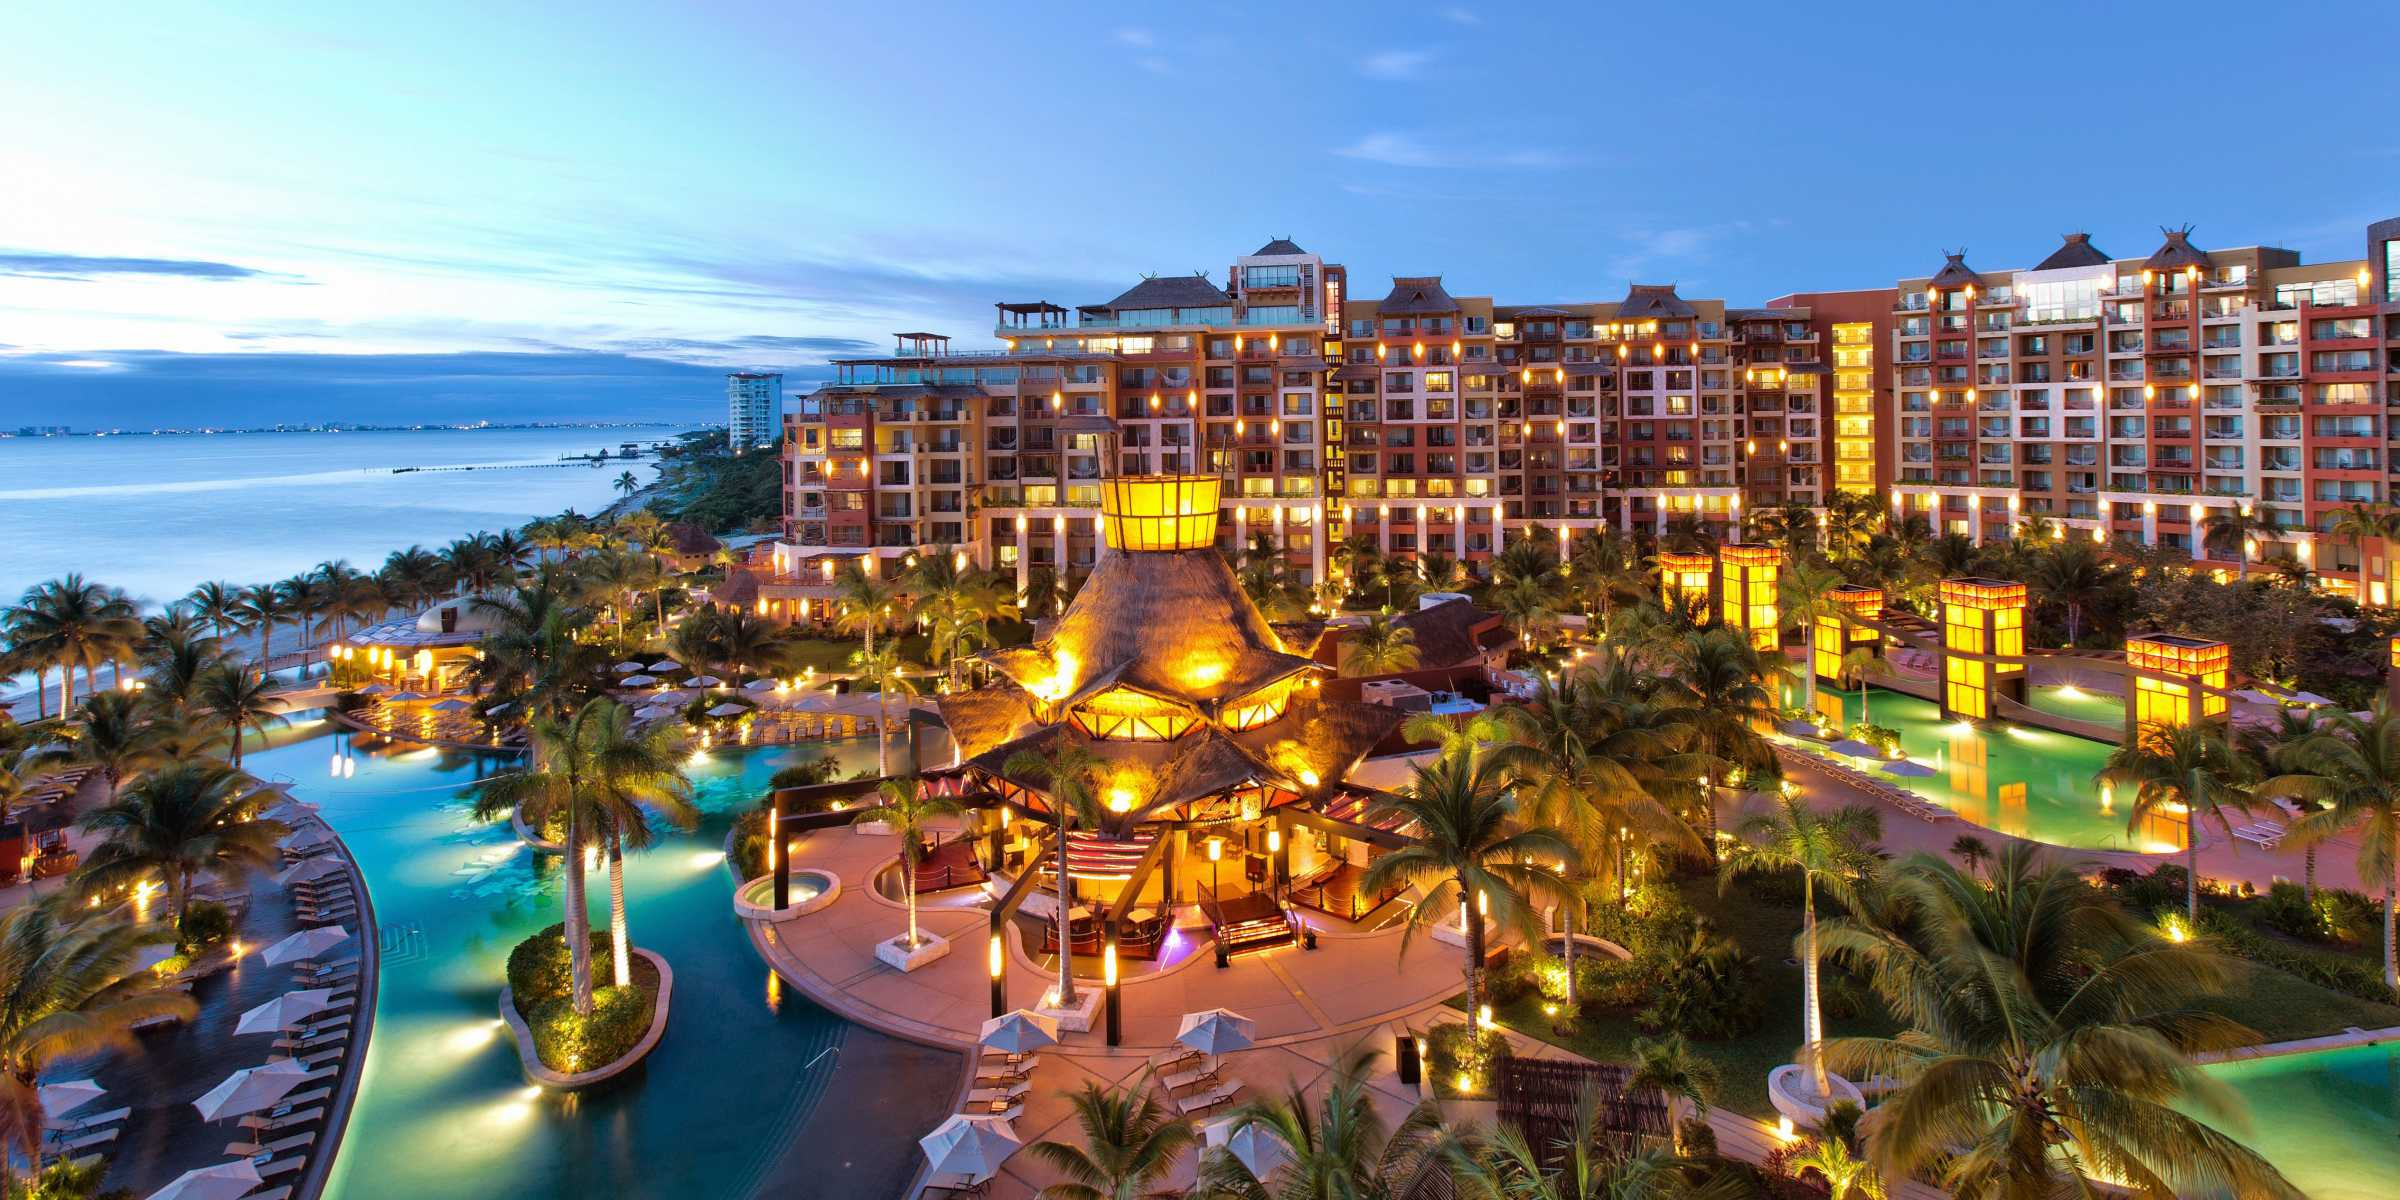 All Inclusive Resort Cancun Vacations Cancun All Inclusive Resorts